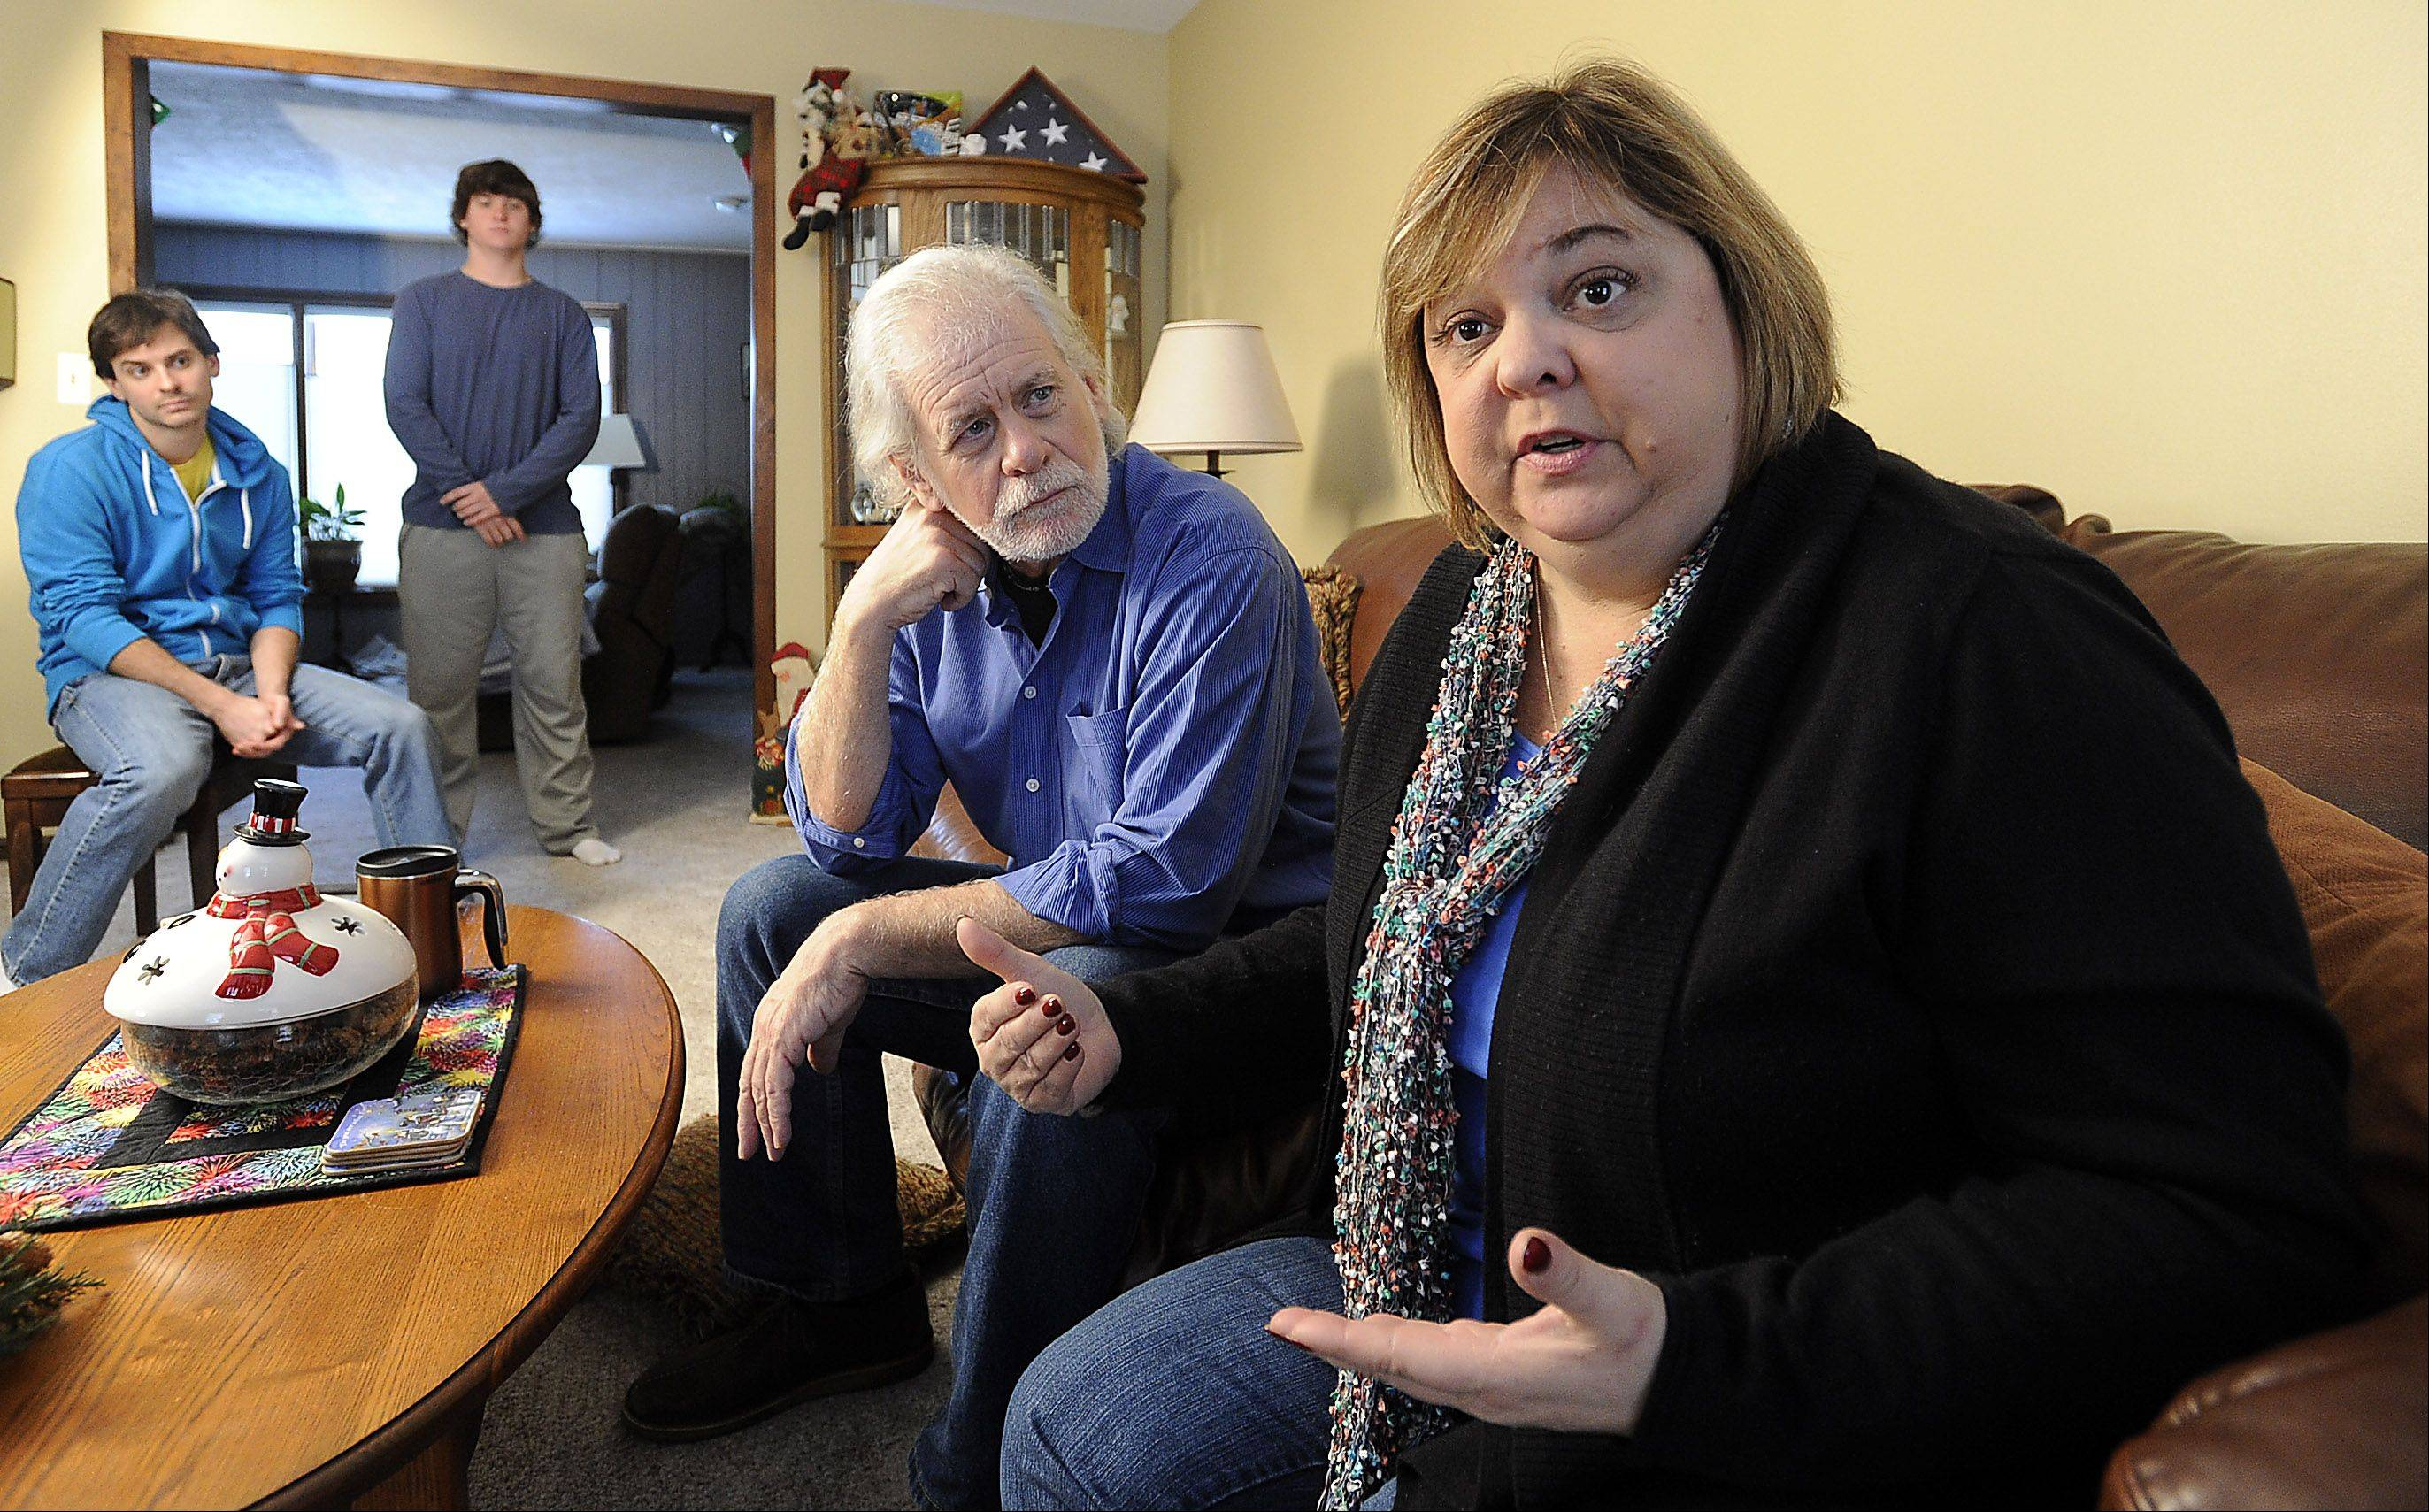 Joyce Moens of Arlington Heights says being without health insurance forced her to let her health slide. On Wednesday, she and her sons, Scott and Eric, and husband Keith will have coverage under the new federal health care law.